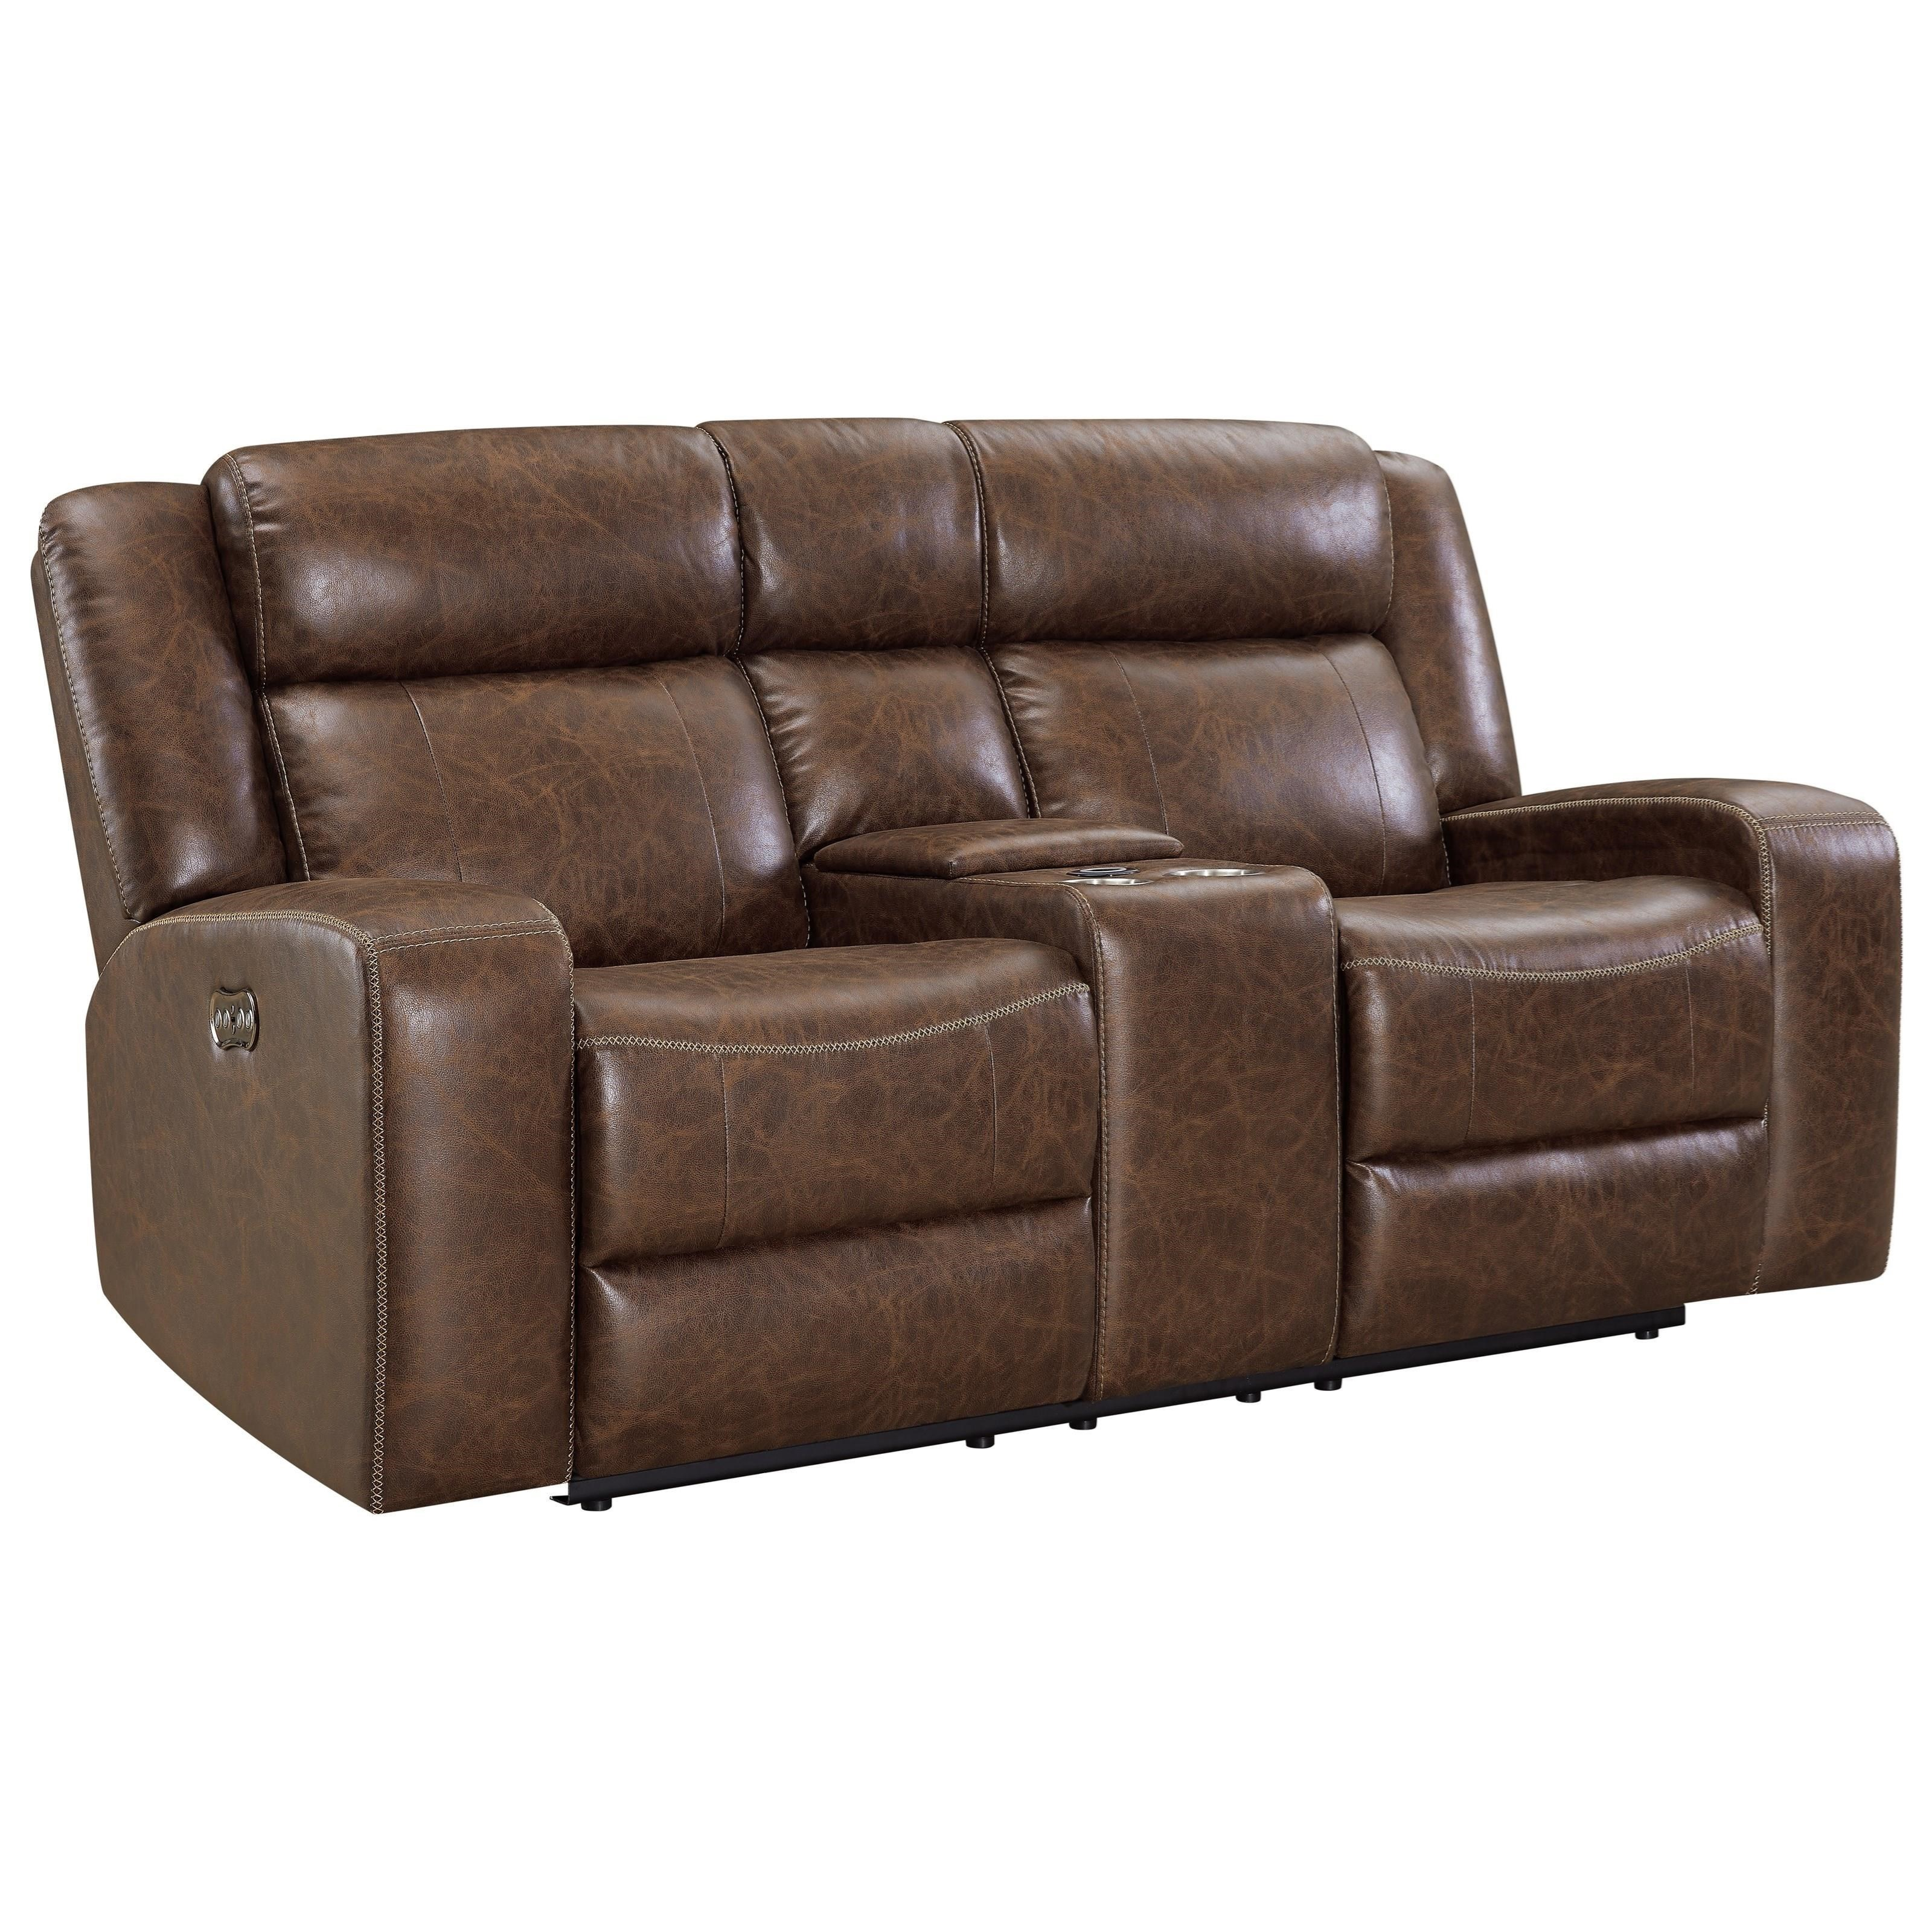 Dual Recliner Console Loveseat